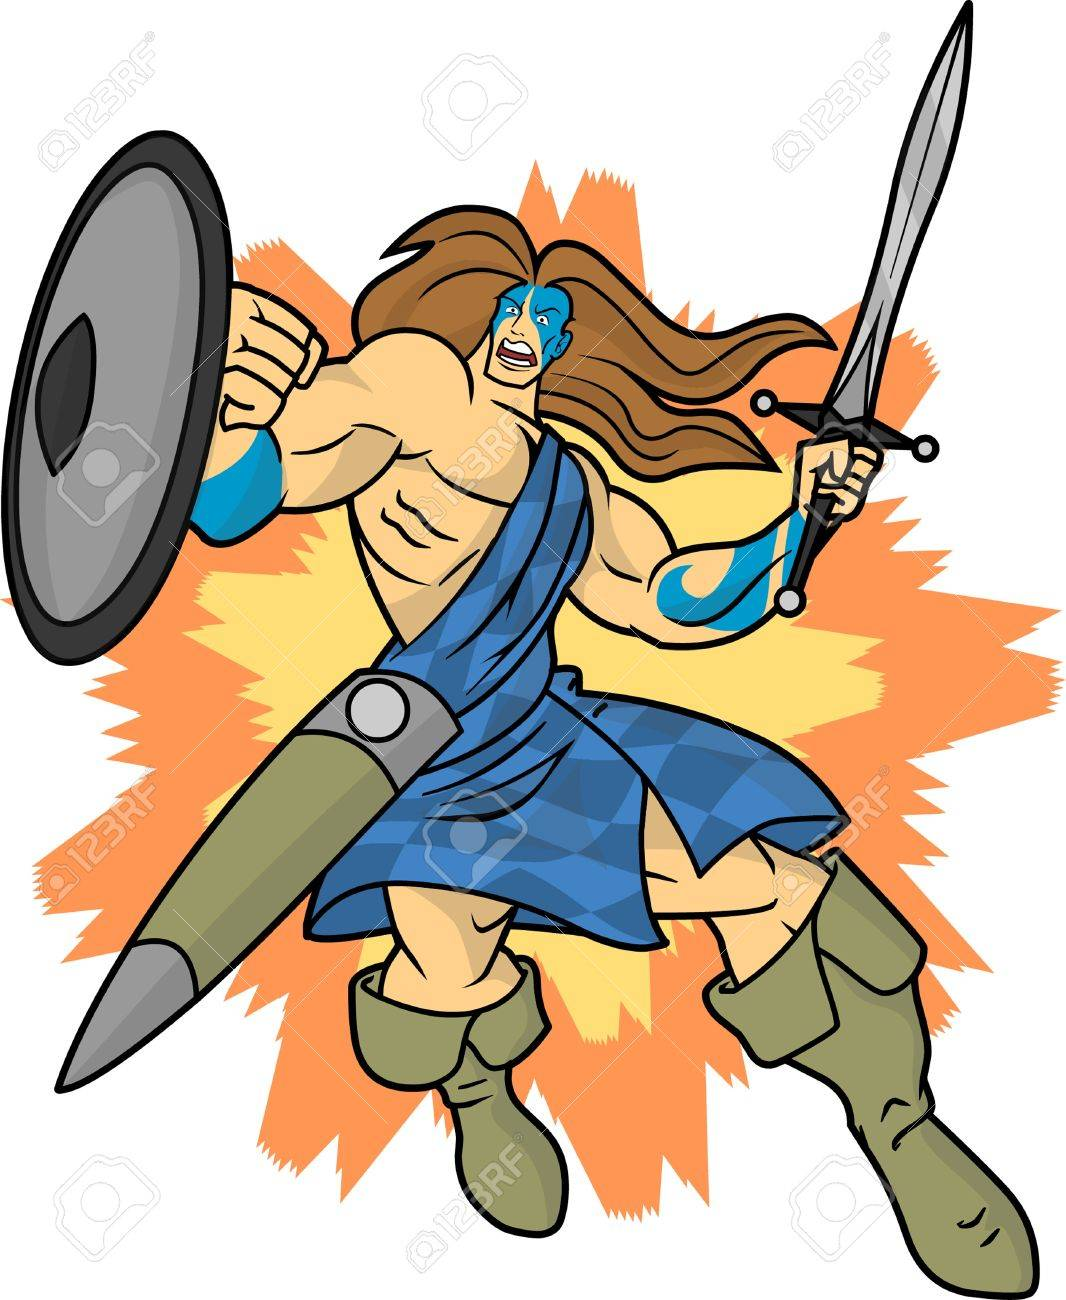 An editable vector cartoon of a fierce highlander or Celtic warrior who is charging into battle. Stock Vector - 20306060